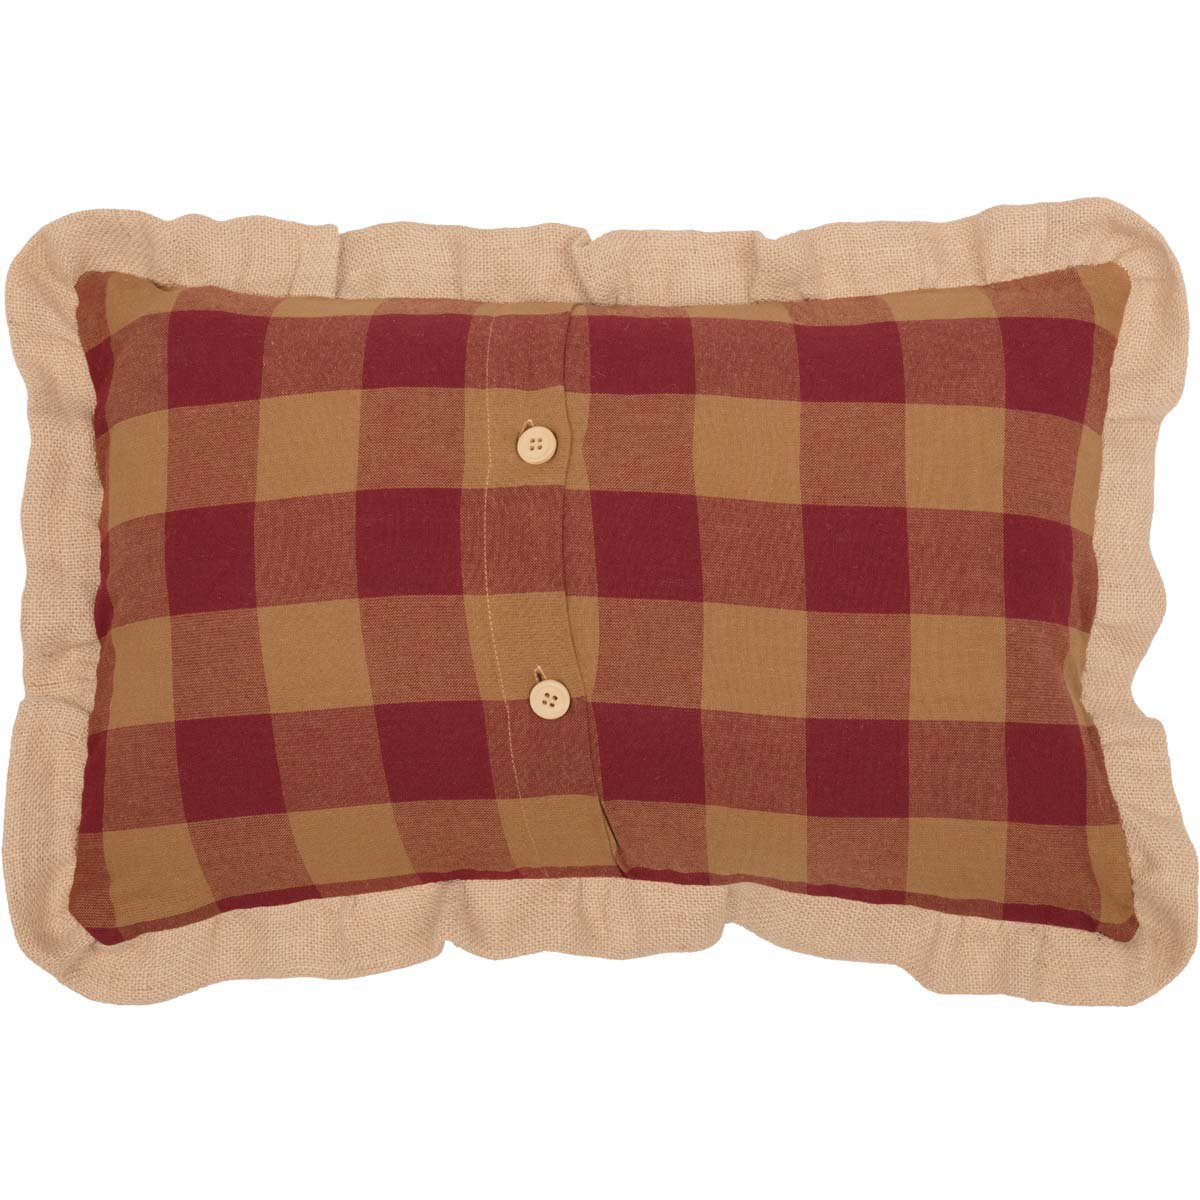 Christmas Blessings Tan 14 x 22 Pillow Brown VHC Brands Holiday Pillows /& Throws